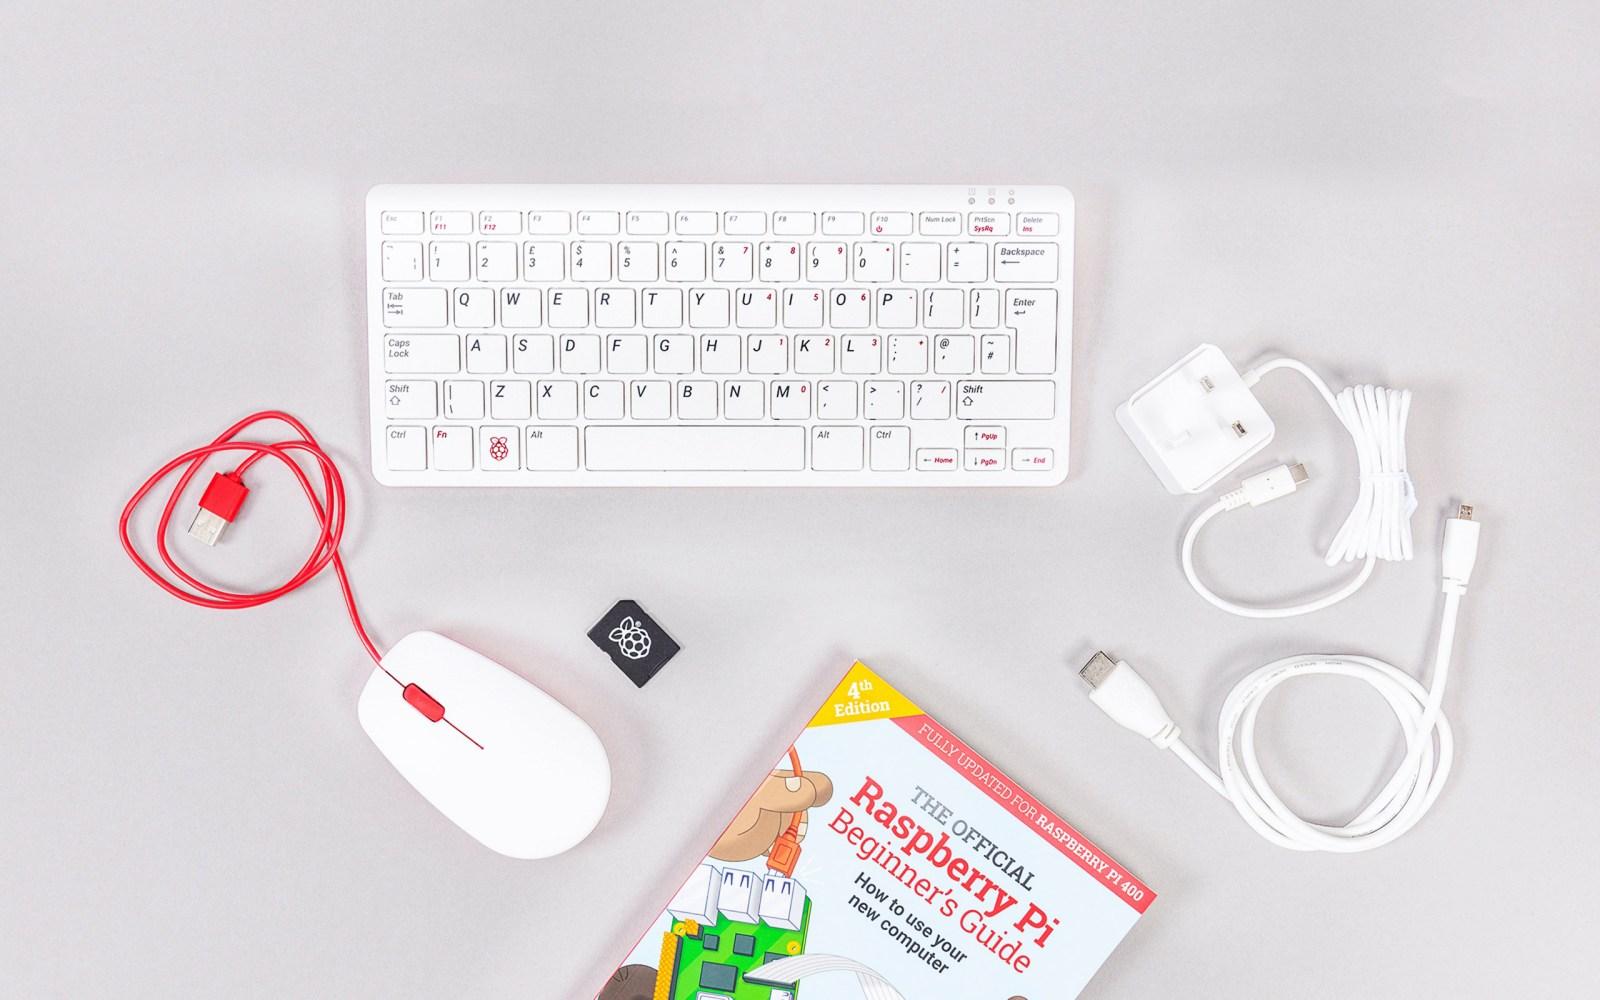 Raspberry Pi 400 Computer Kit is a PC built into a compact keyboard